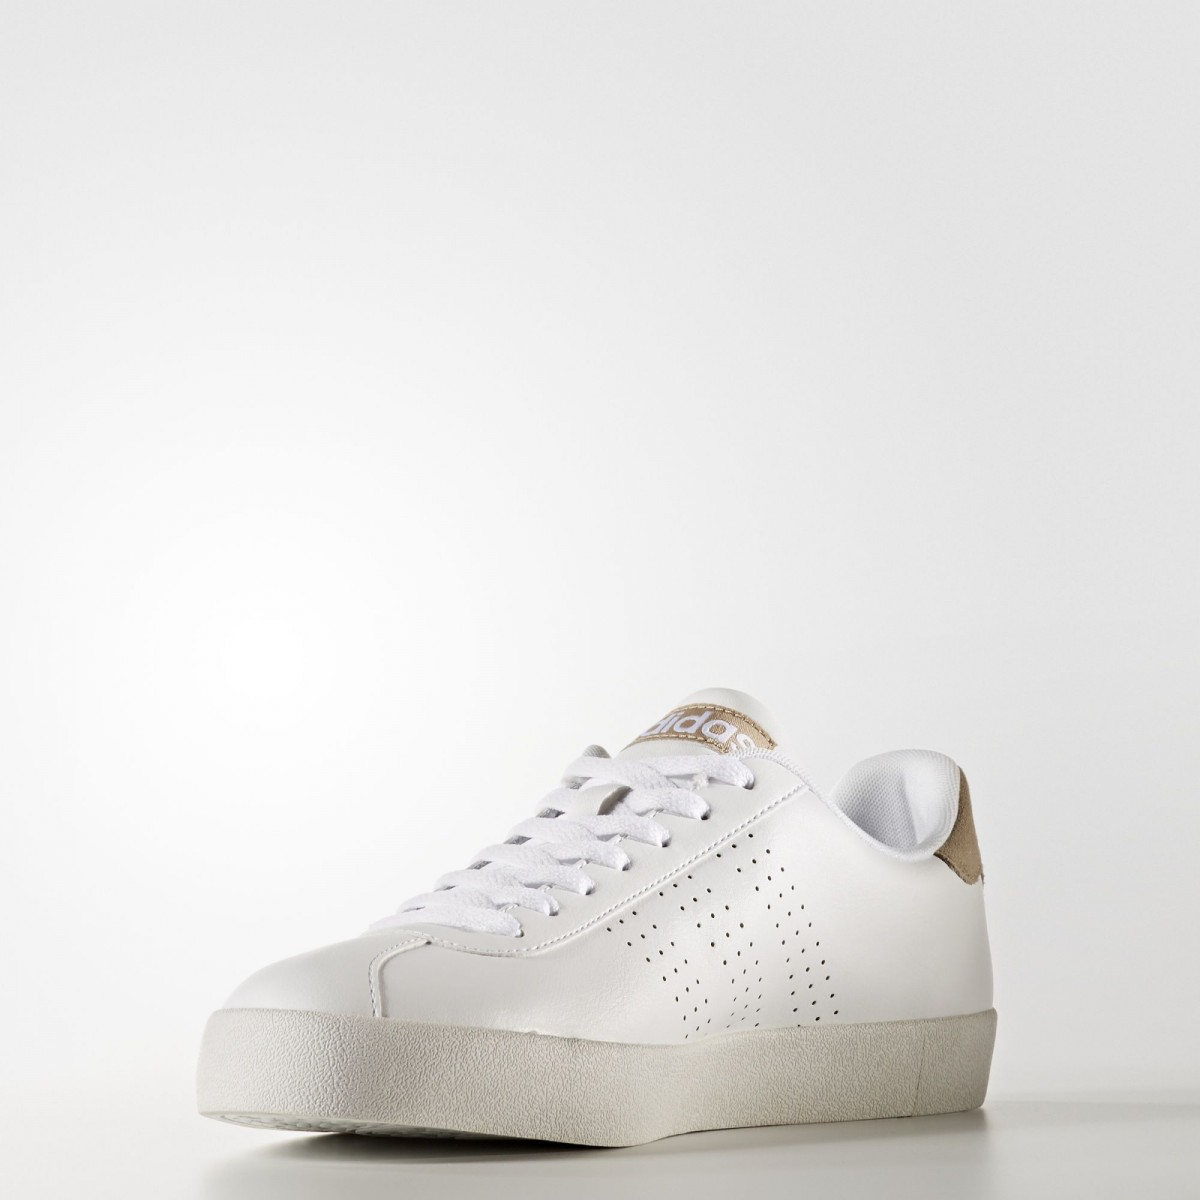 adidas neo vl court vulc mens trainers white